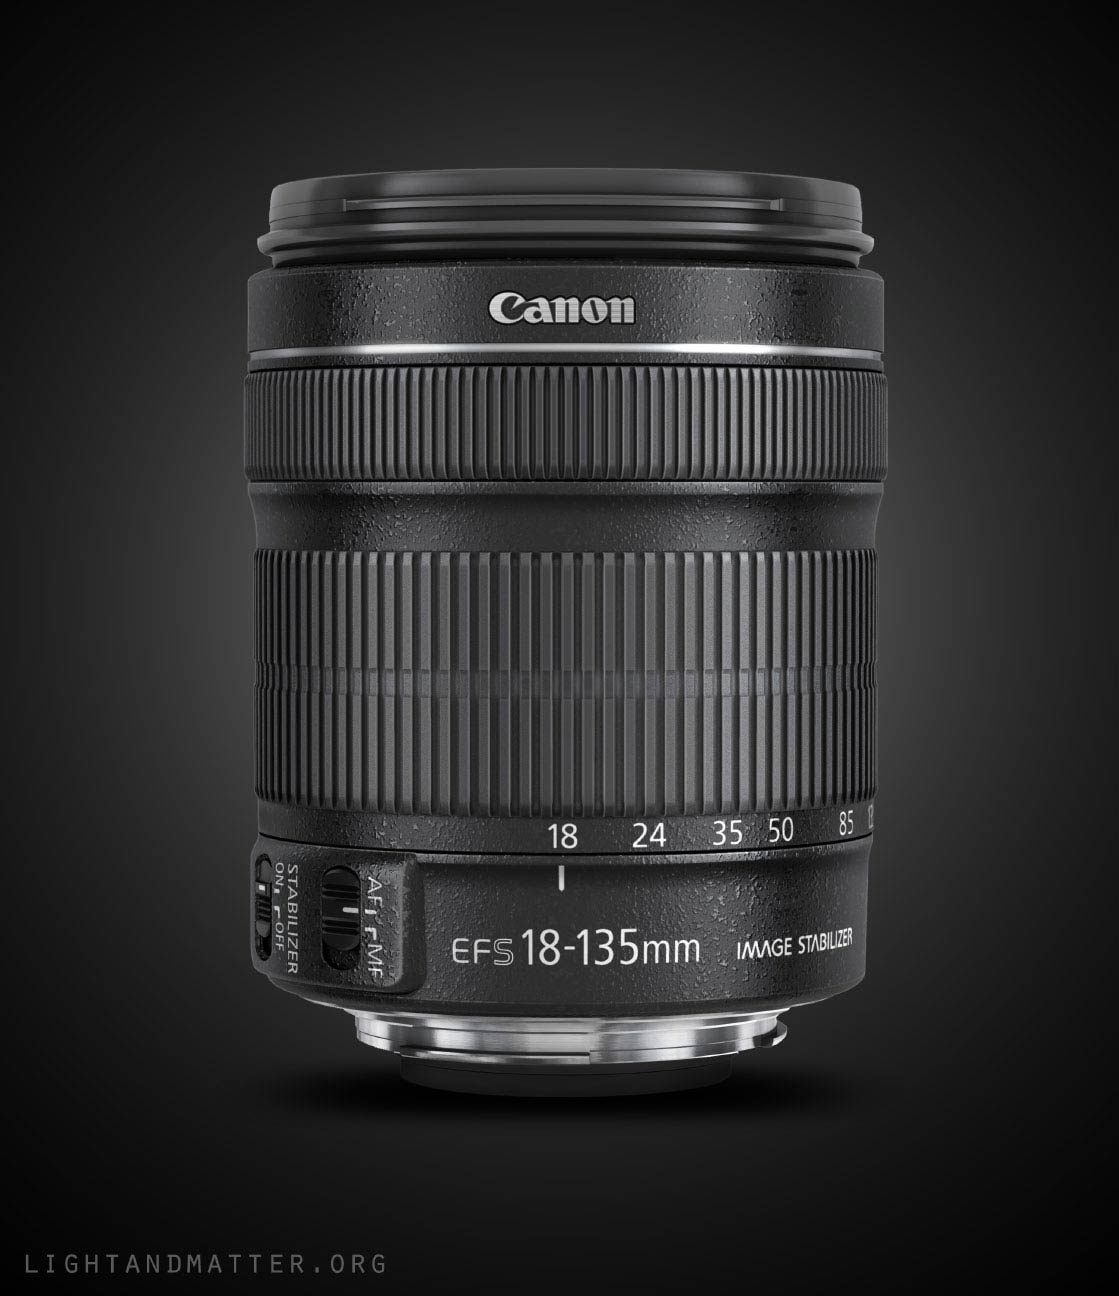 Canon 18-135 f/3.5-5.6 IS STM Lens